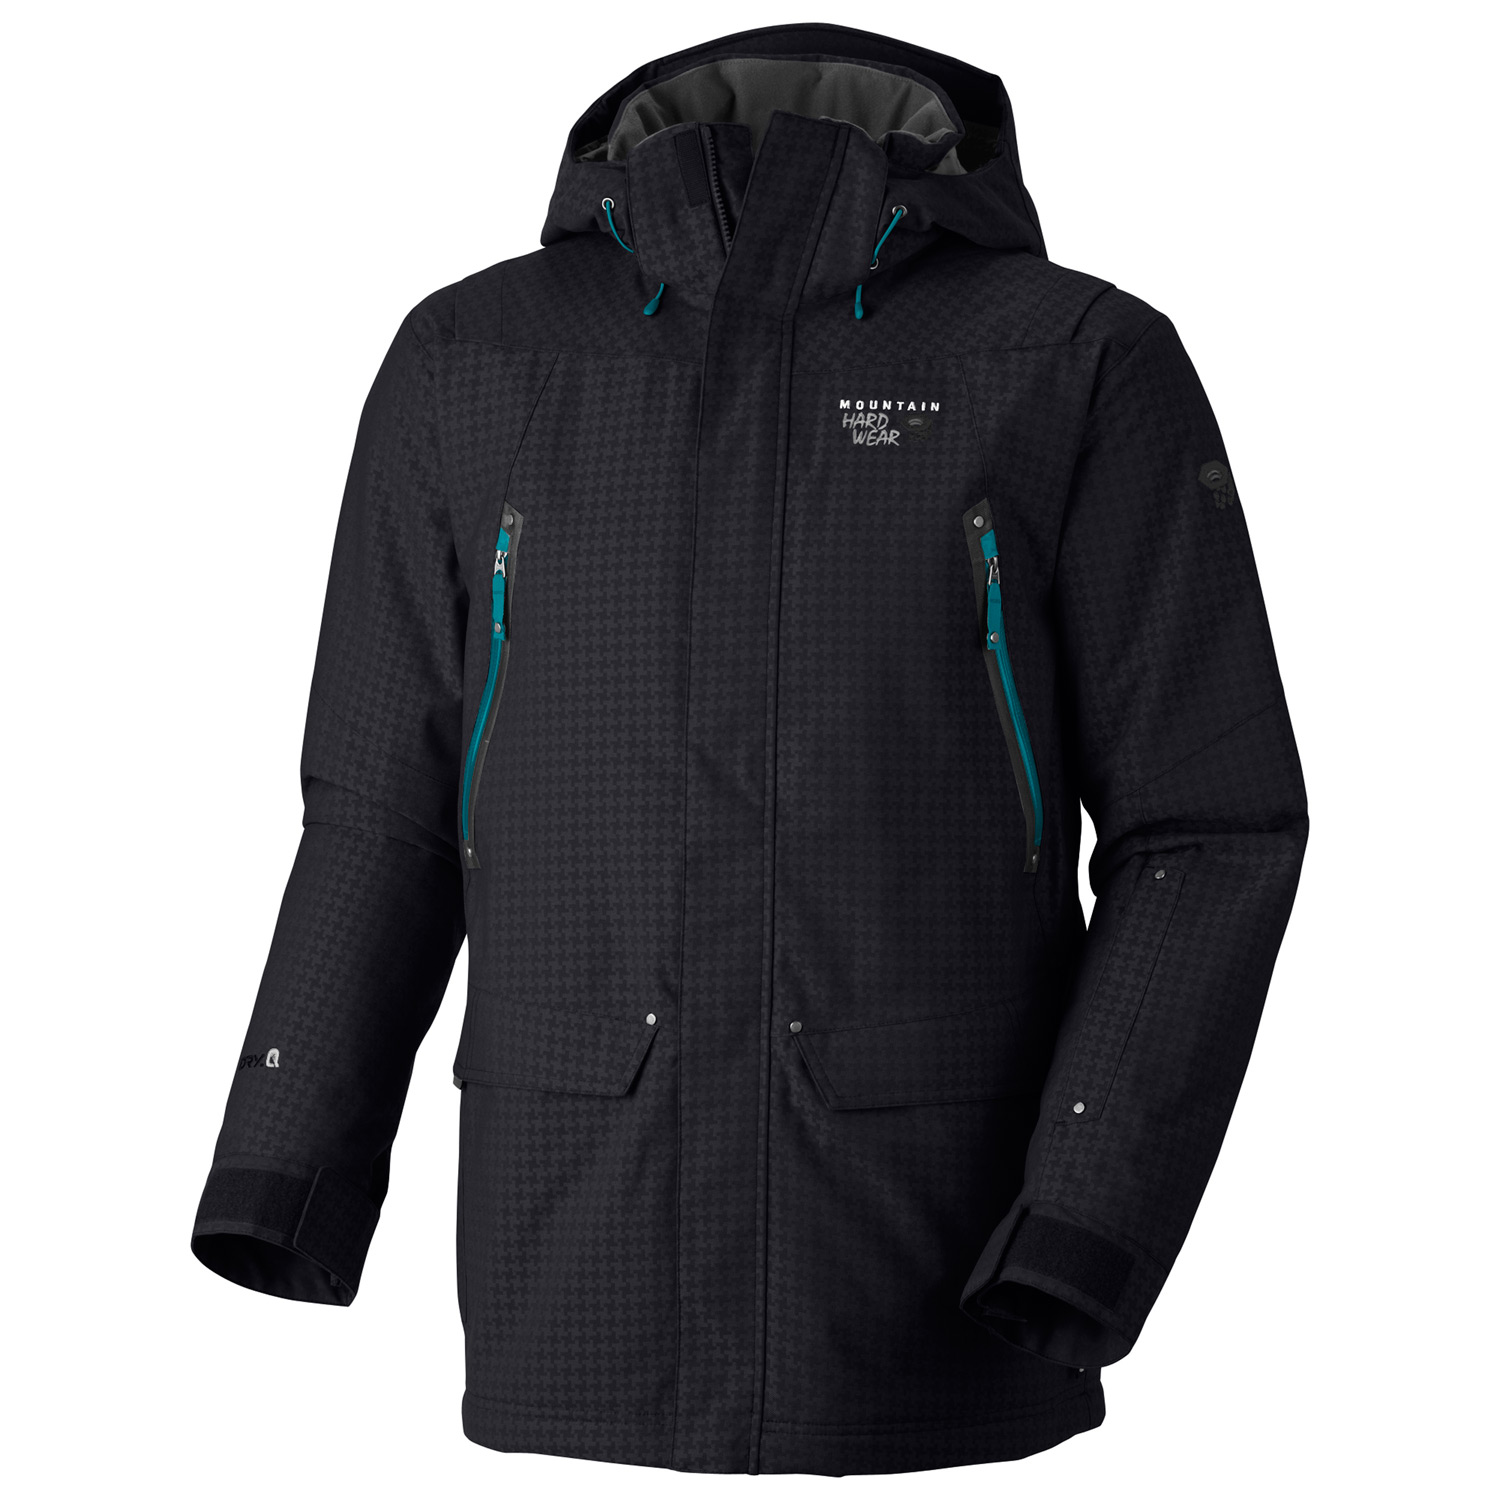 Ski Waterproof and warm, with variable synthetic insulation in the body and sleeves. This jacket is the perfect companion on the ski hill. - $227.95